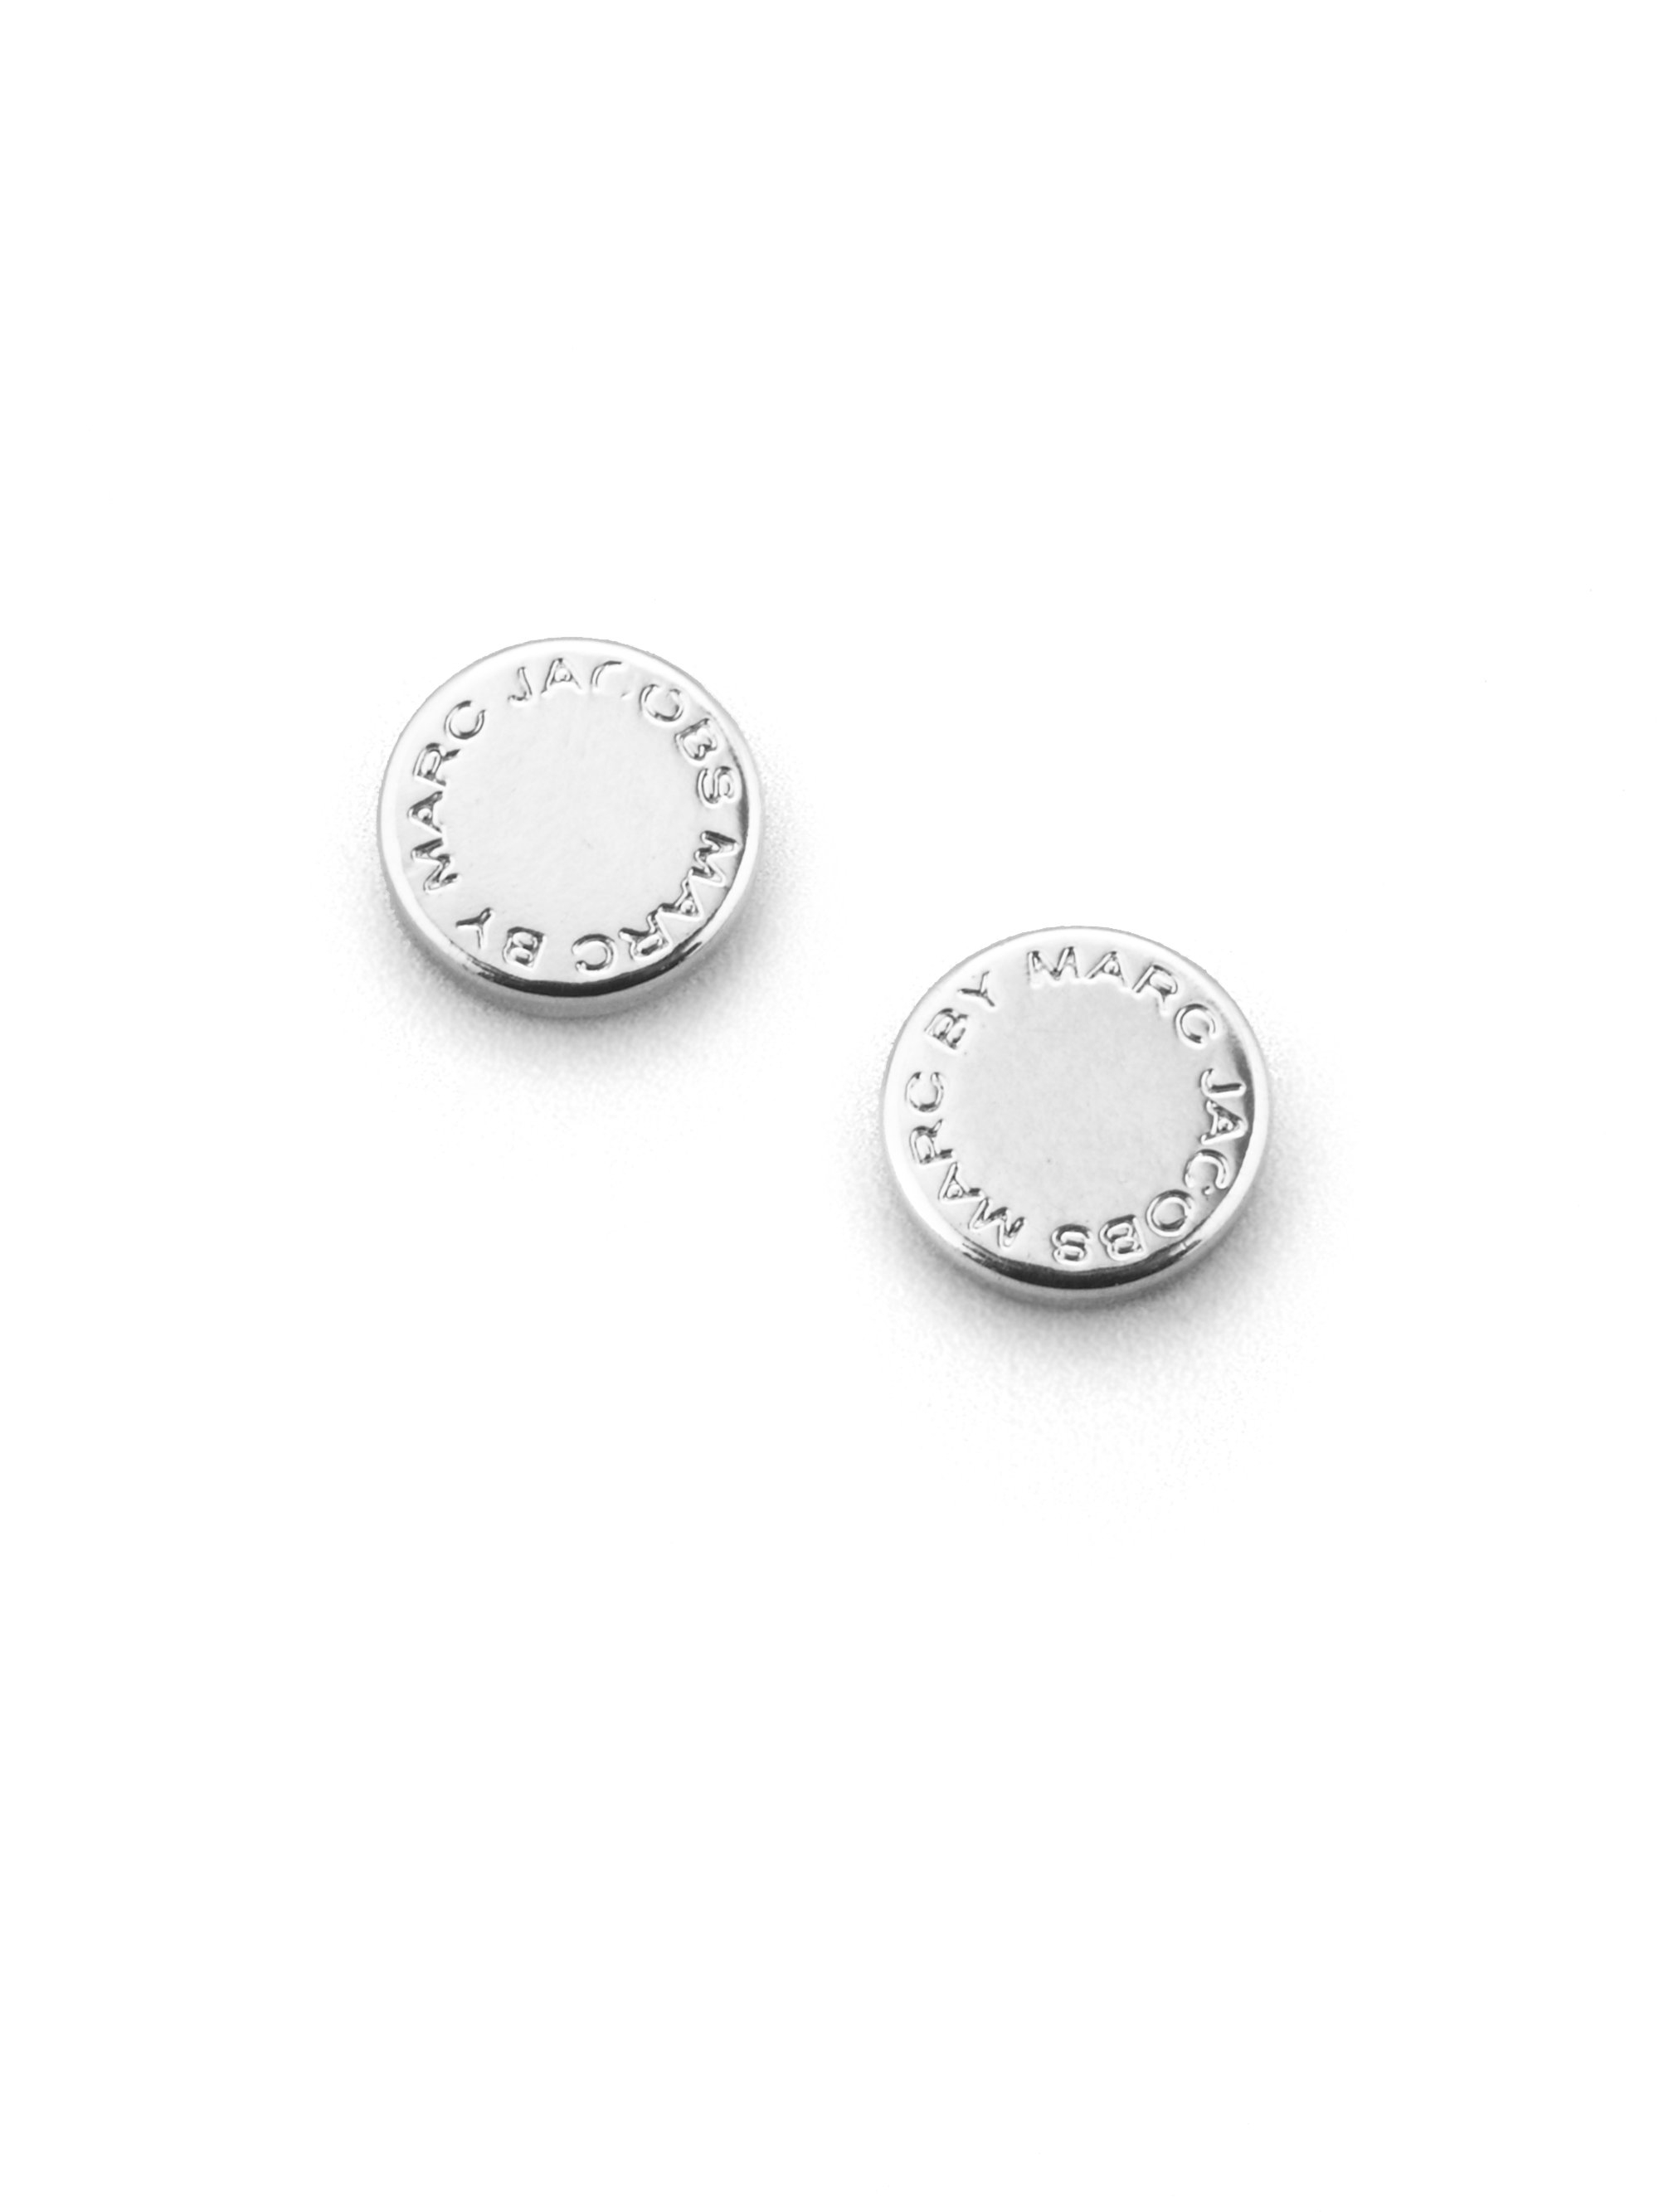 Marc Jacobs Logo Earrings 1001 Health Care Logos